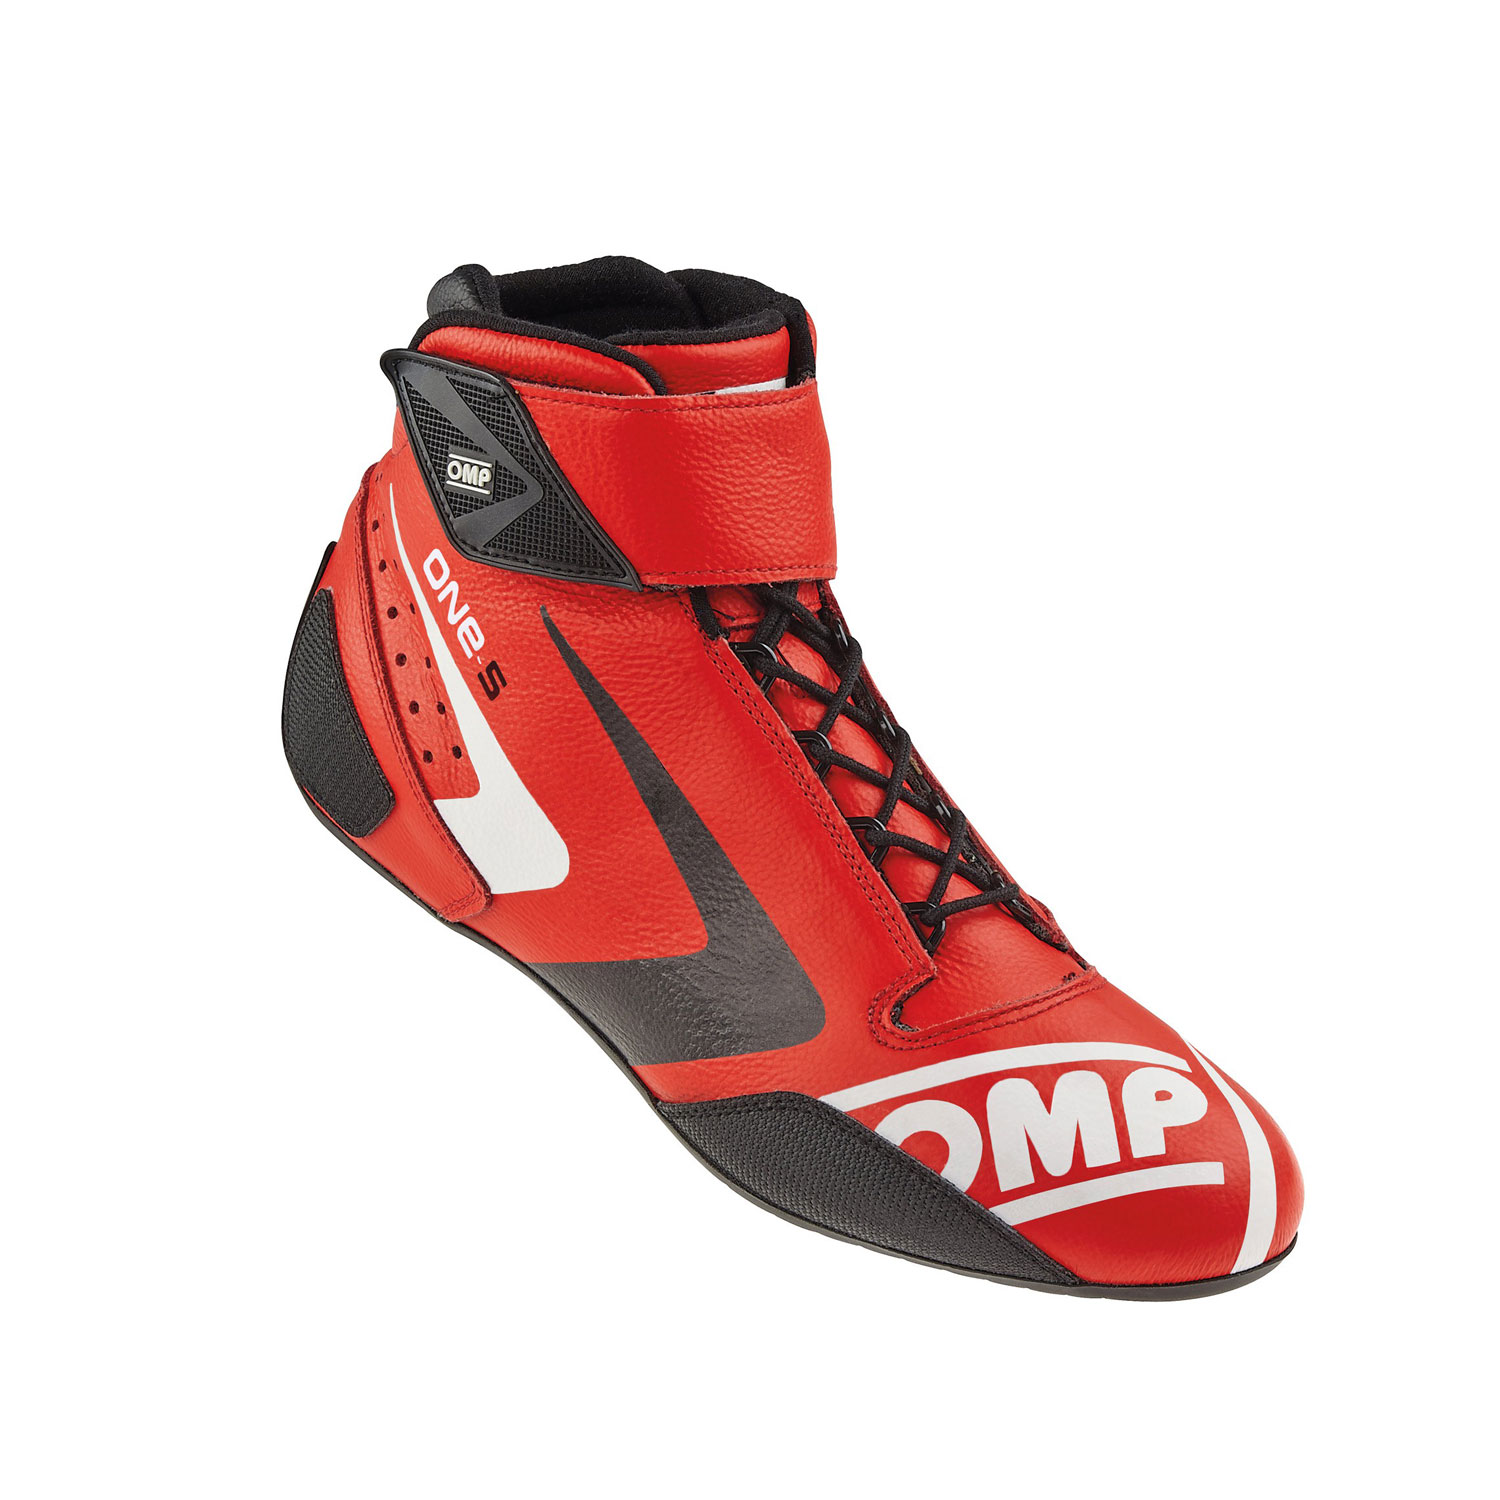 Shoes Racing S Redfia Homologation Omp One My16 FlKT1Jc3